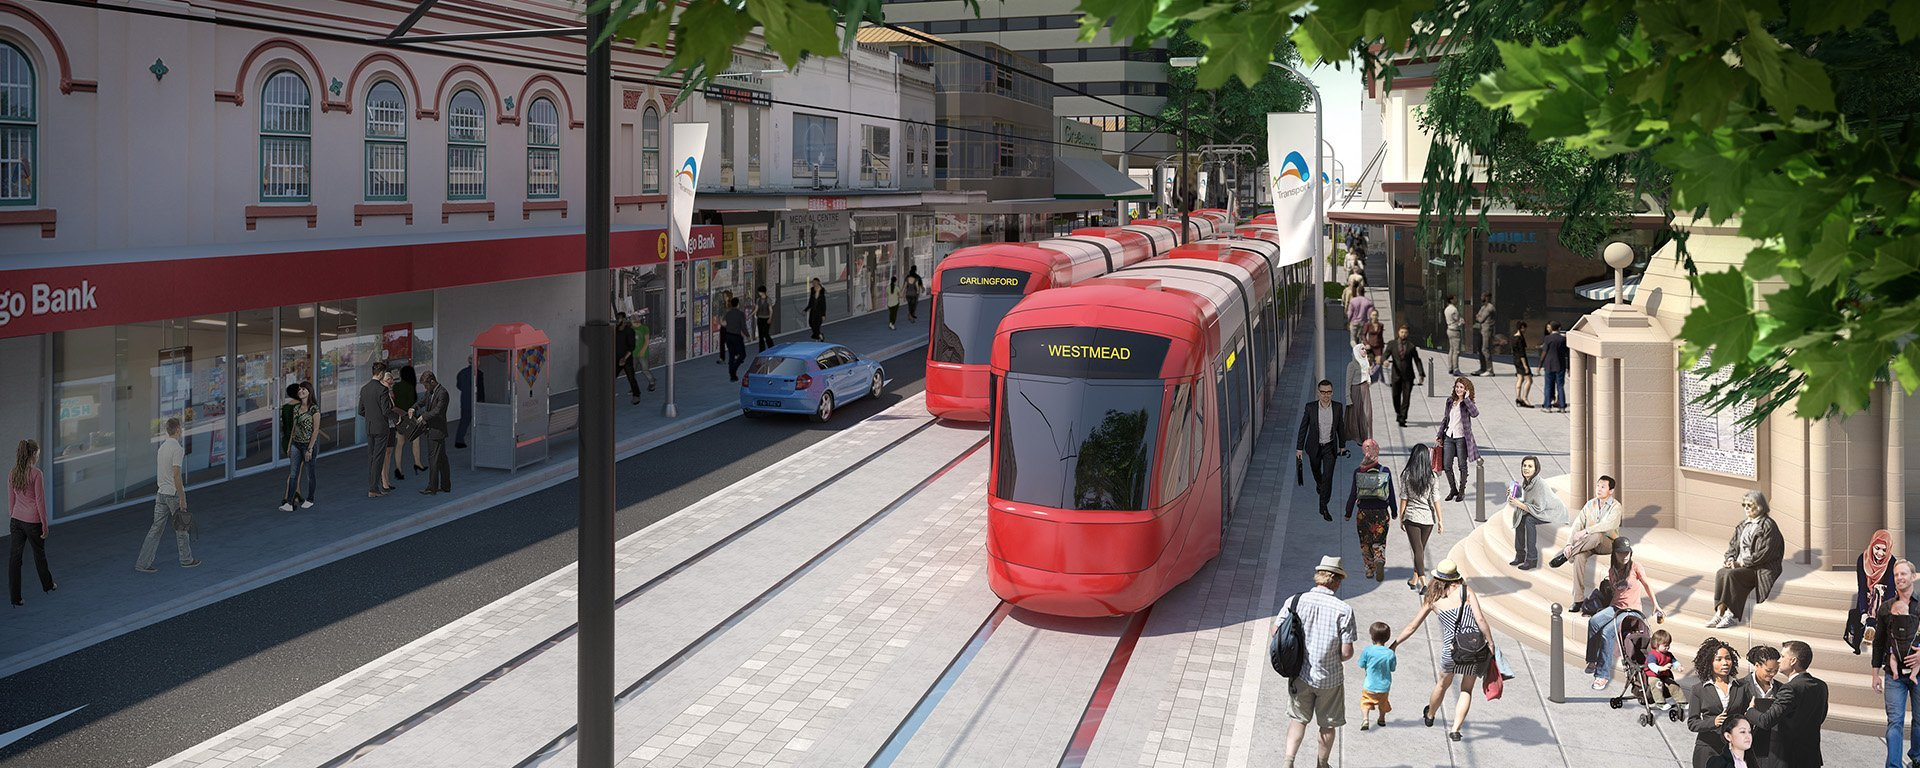 Parramatta red Light Rail Macquarie Street Australia tramway rouge Transdev mobility company passengers passagers